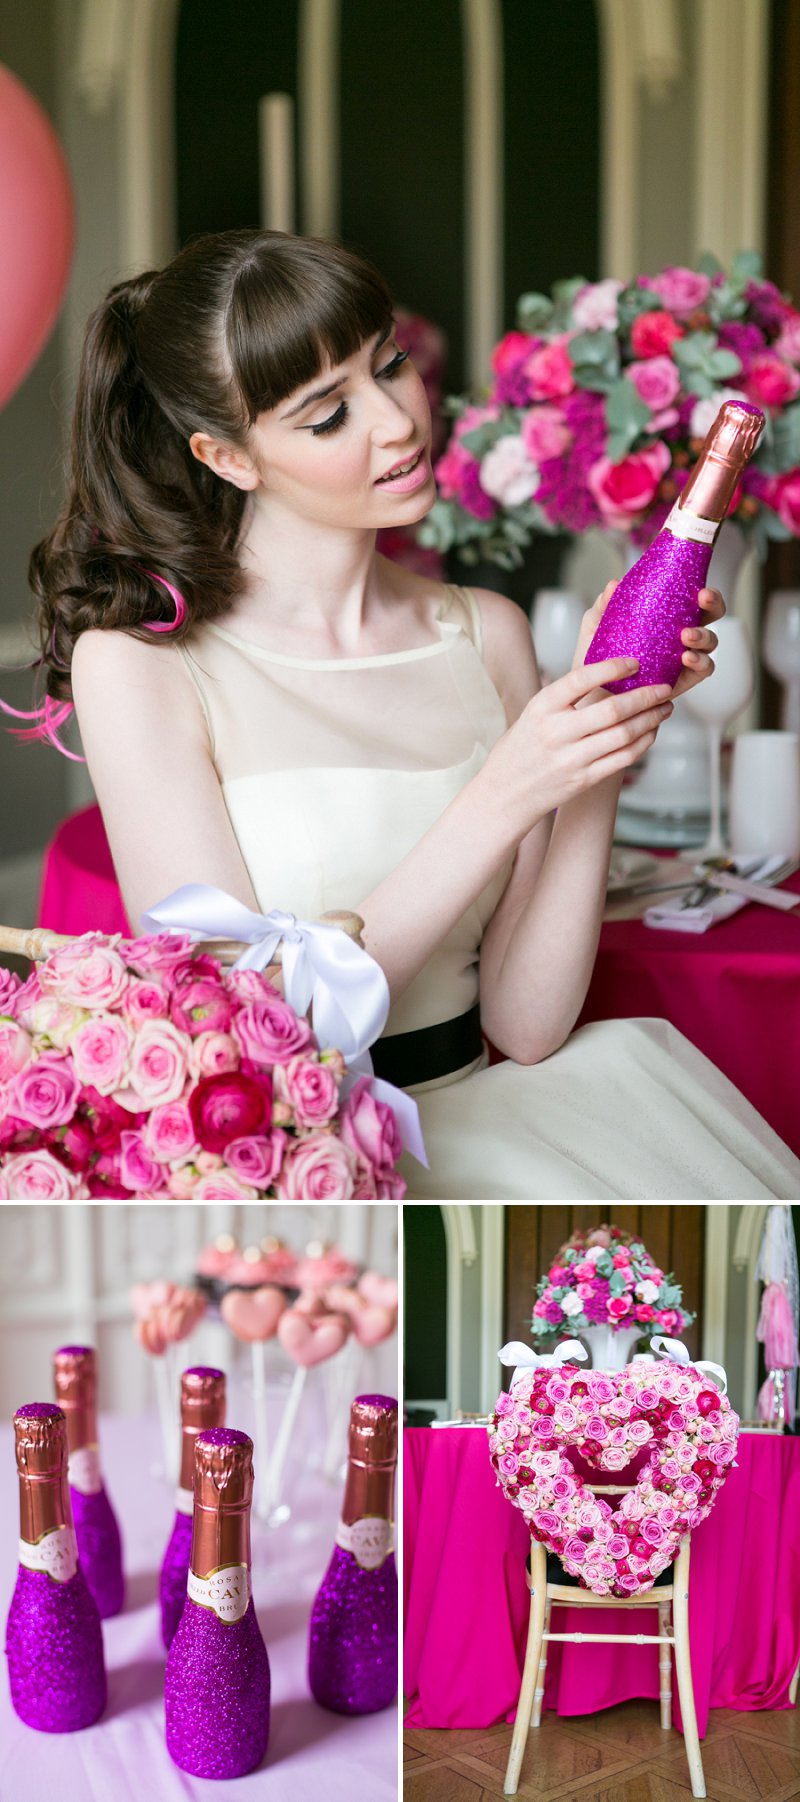 Fun Girly Bridal Inspiration Shoot At Nonsuch Mansion Inspired By Holly Golightly With Bright Pink Details A Vintage Wedding Car With Images by Anneli Marinovich Photography 8